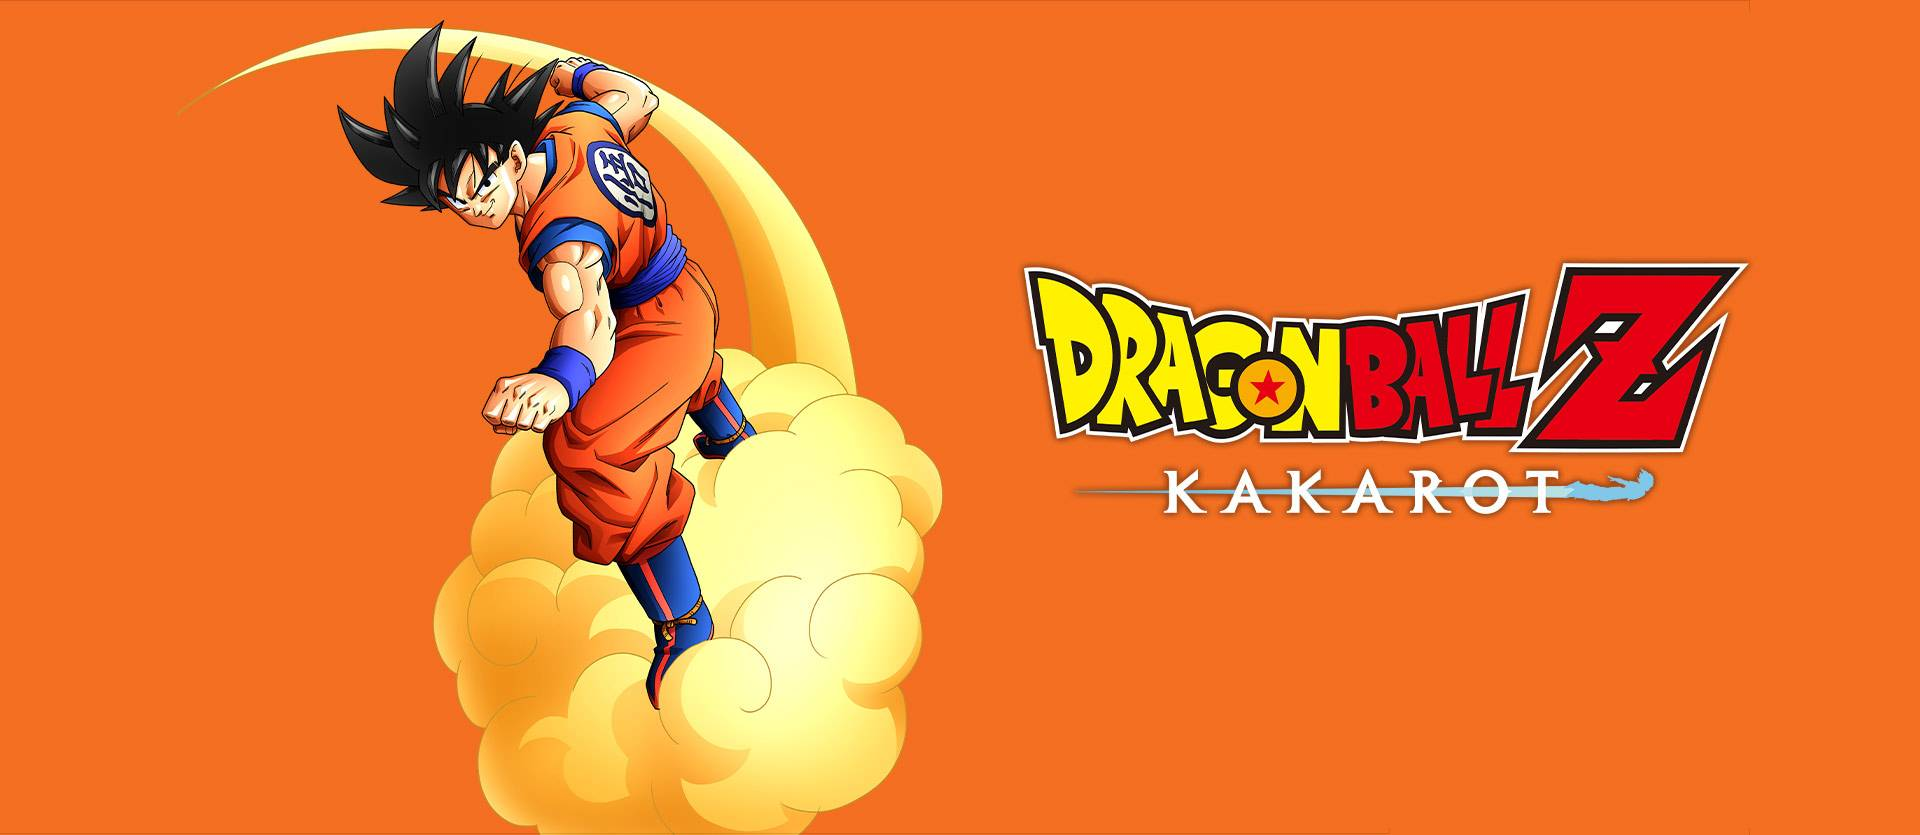 Imagem do Dragon Ball Z: Kakarot